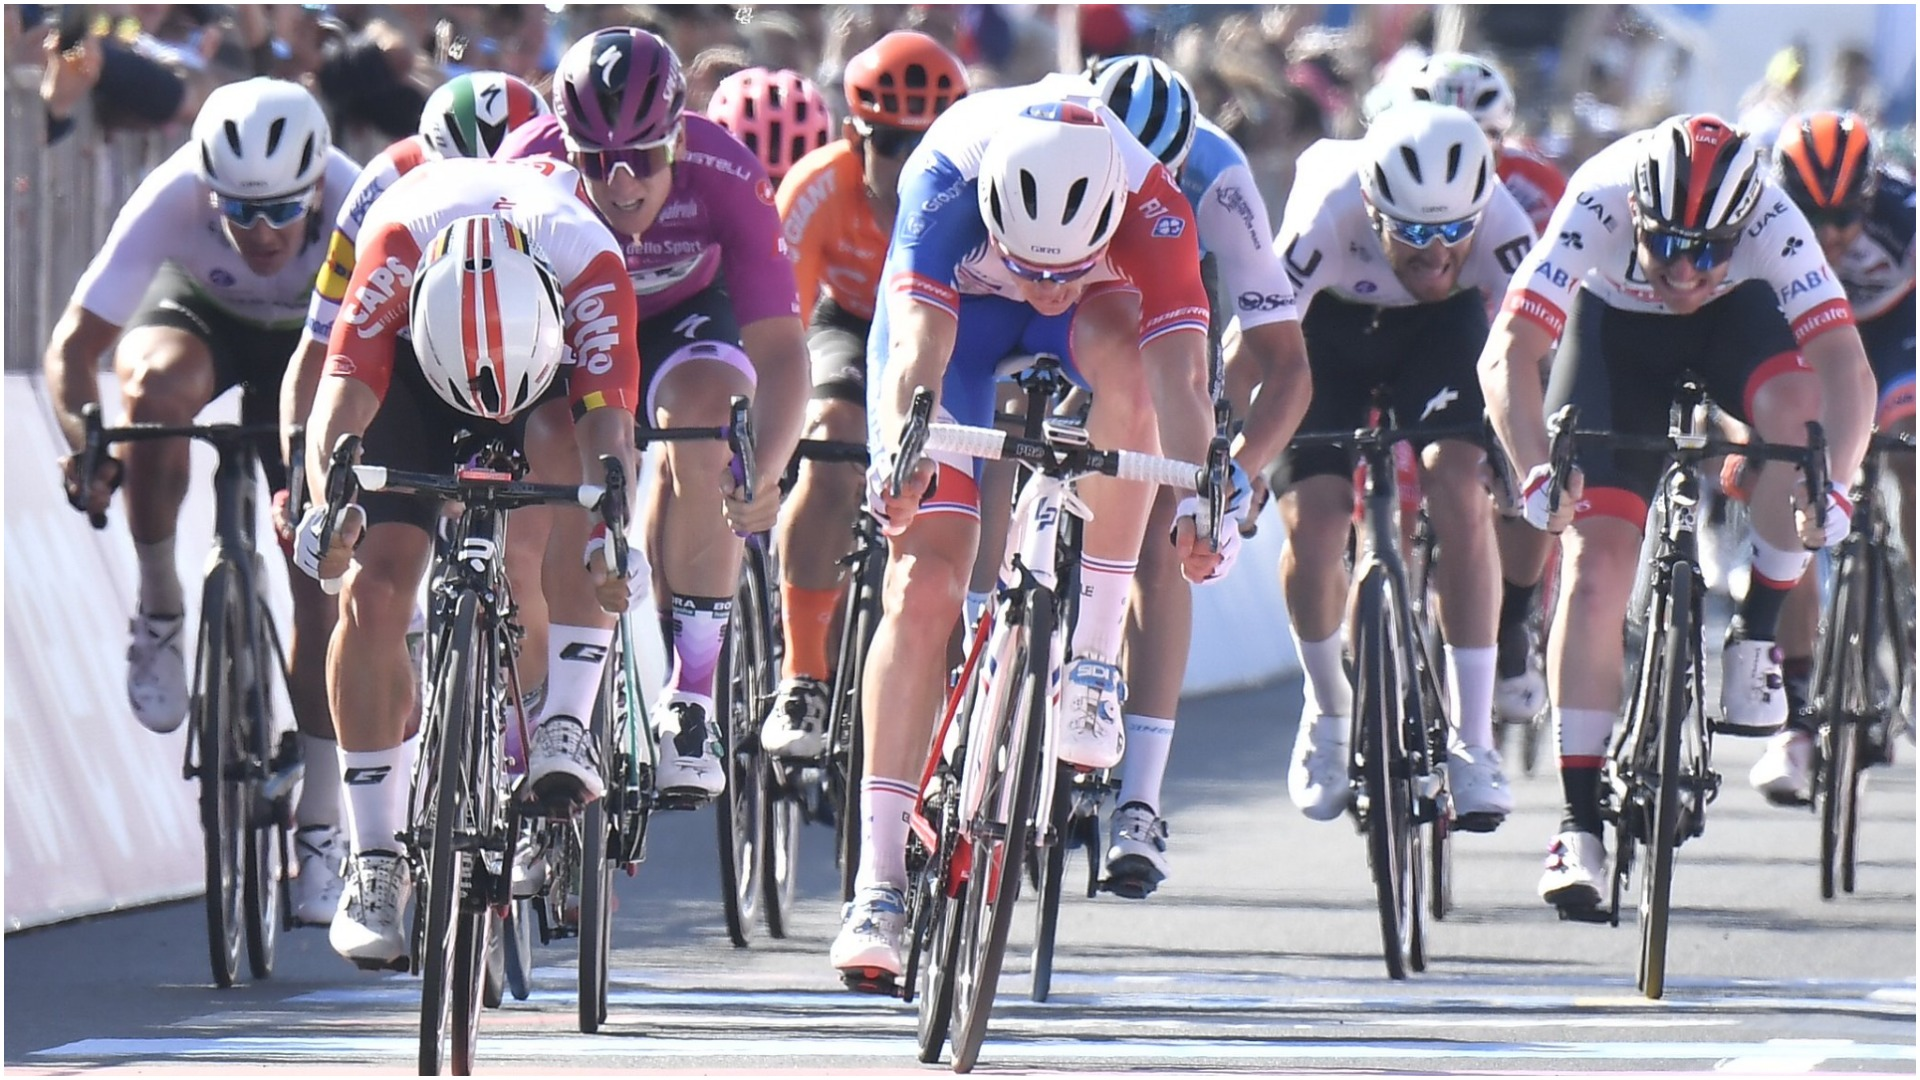 Ewan victory sees Demare nudge into Giro points lead